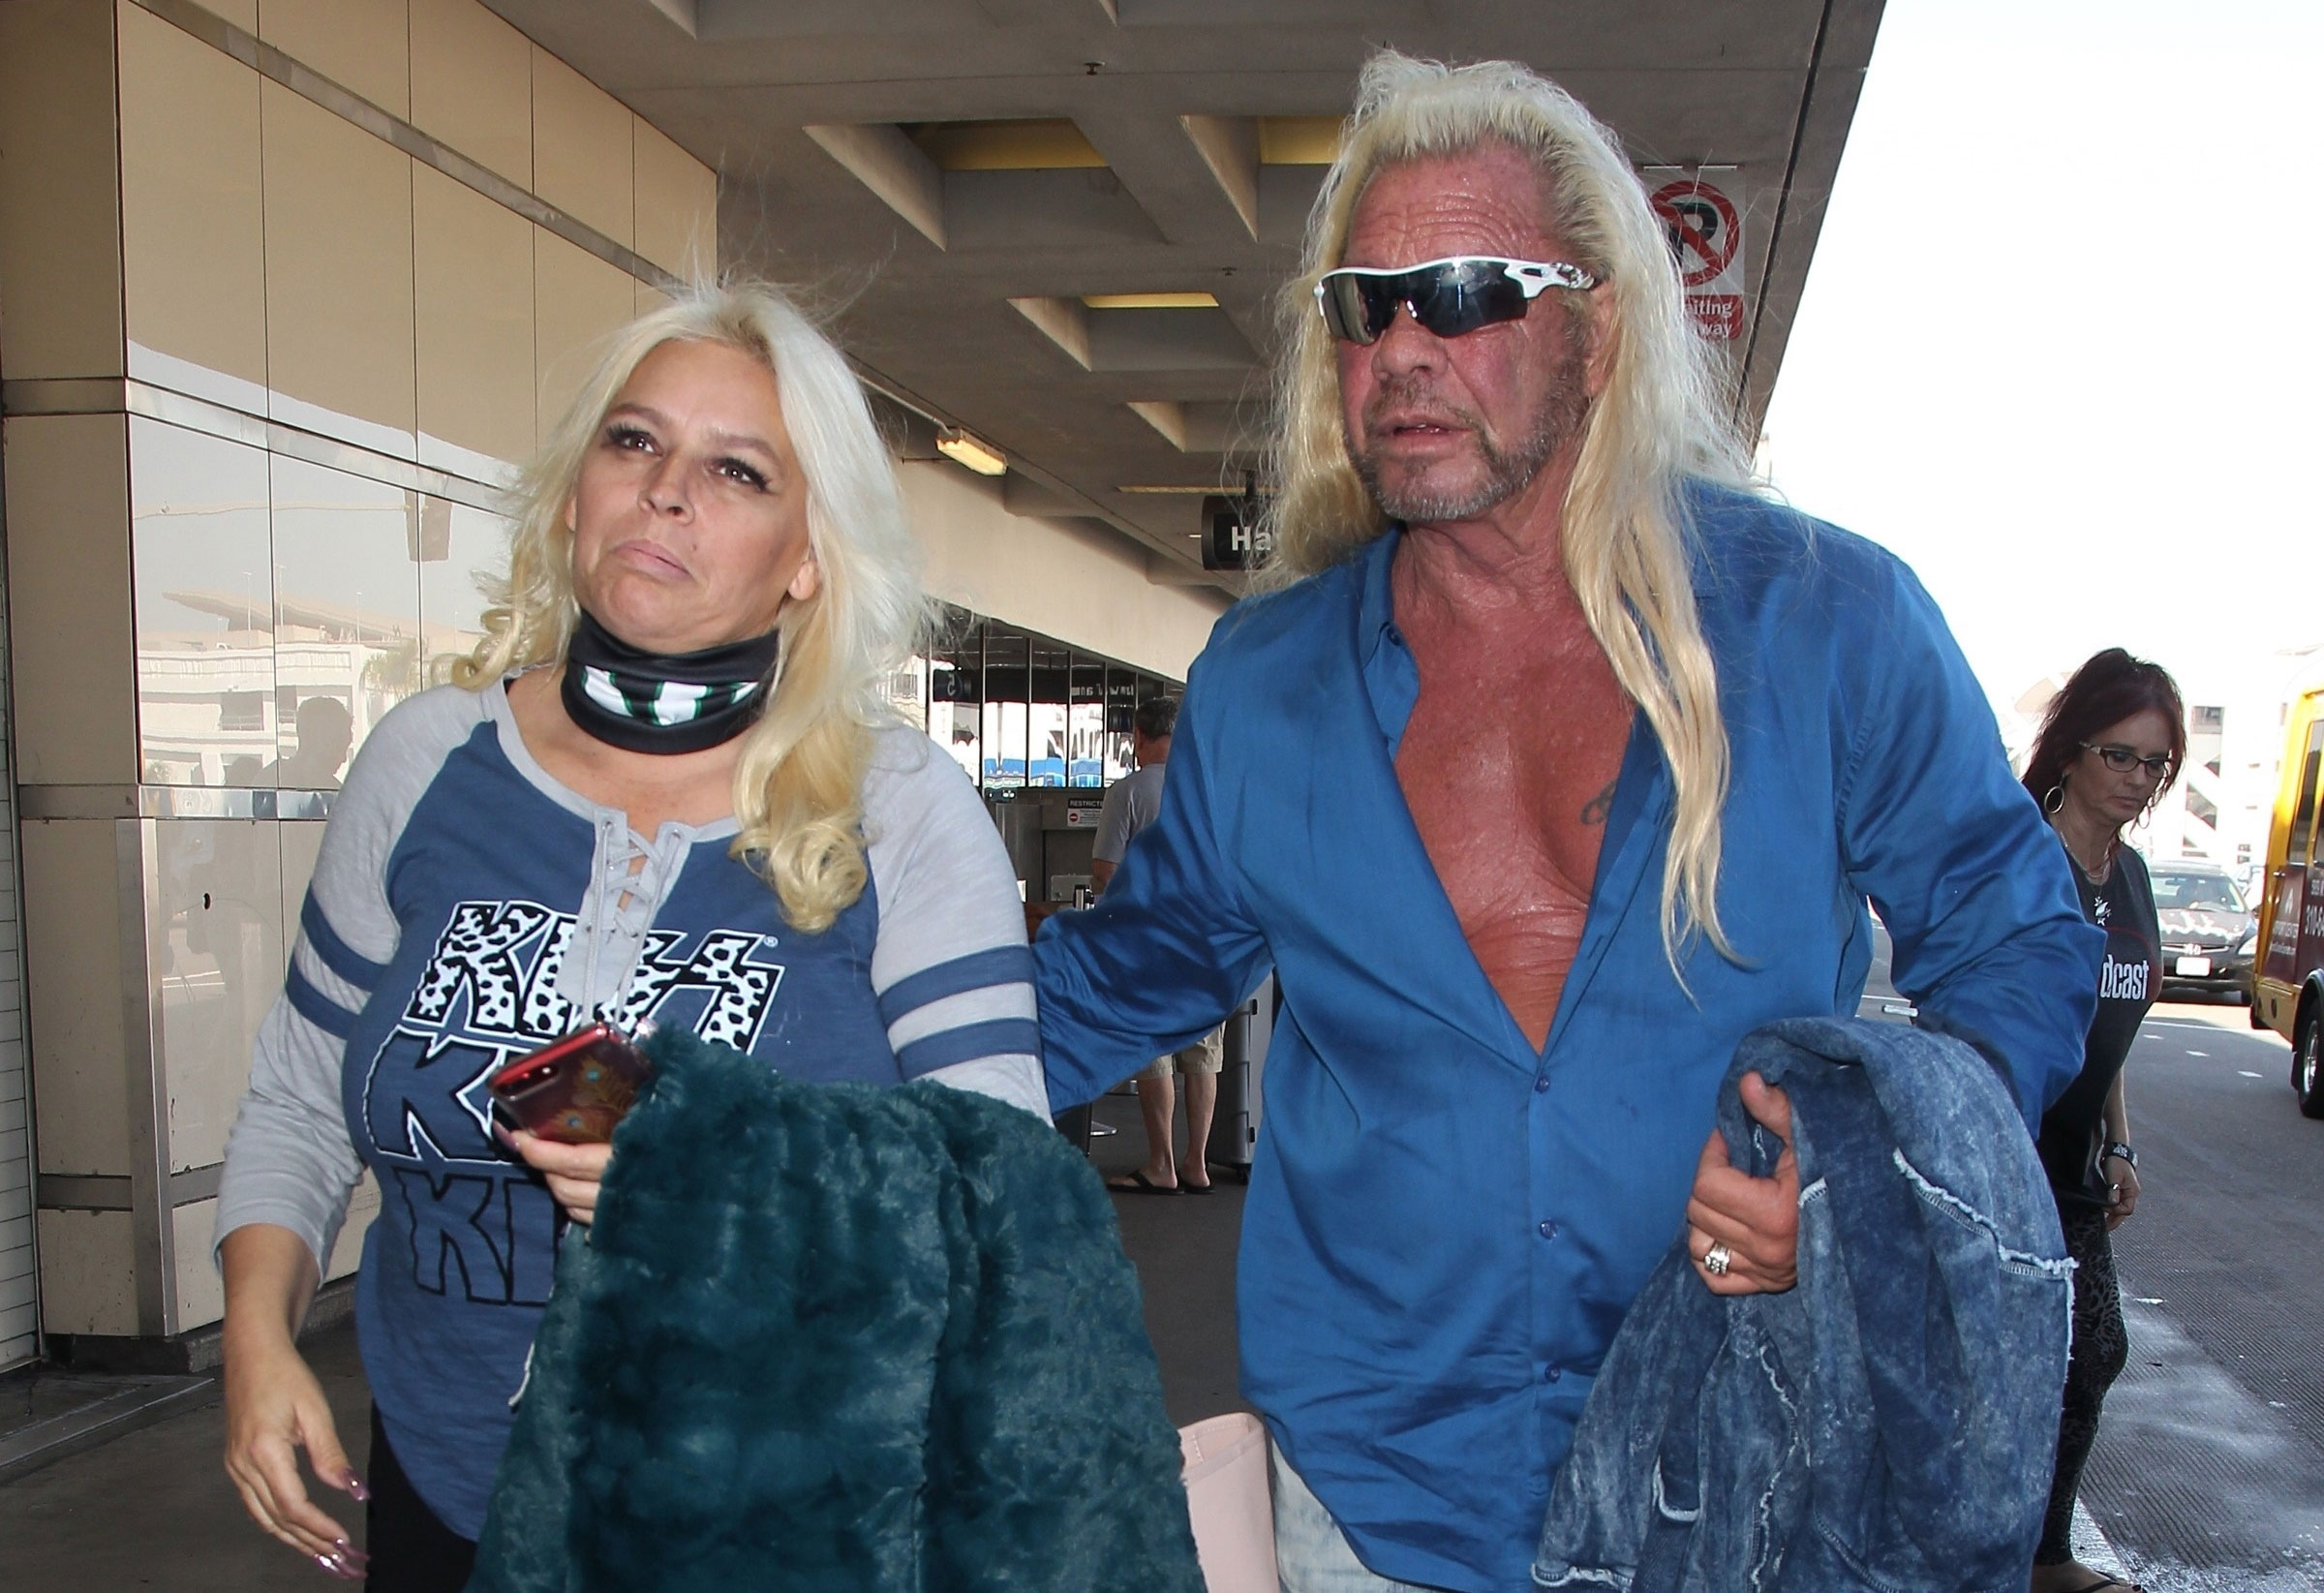 video dog the bounty hunter reveals his dog died of a